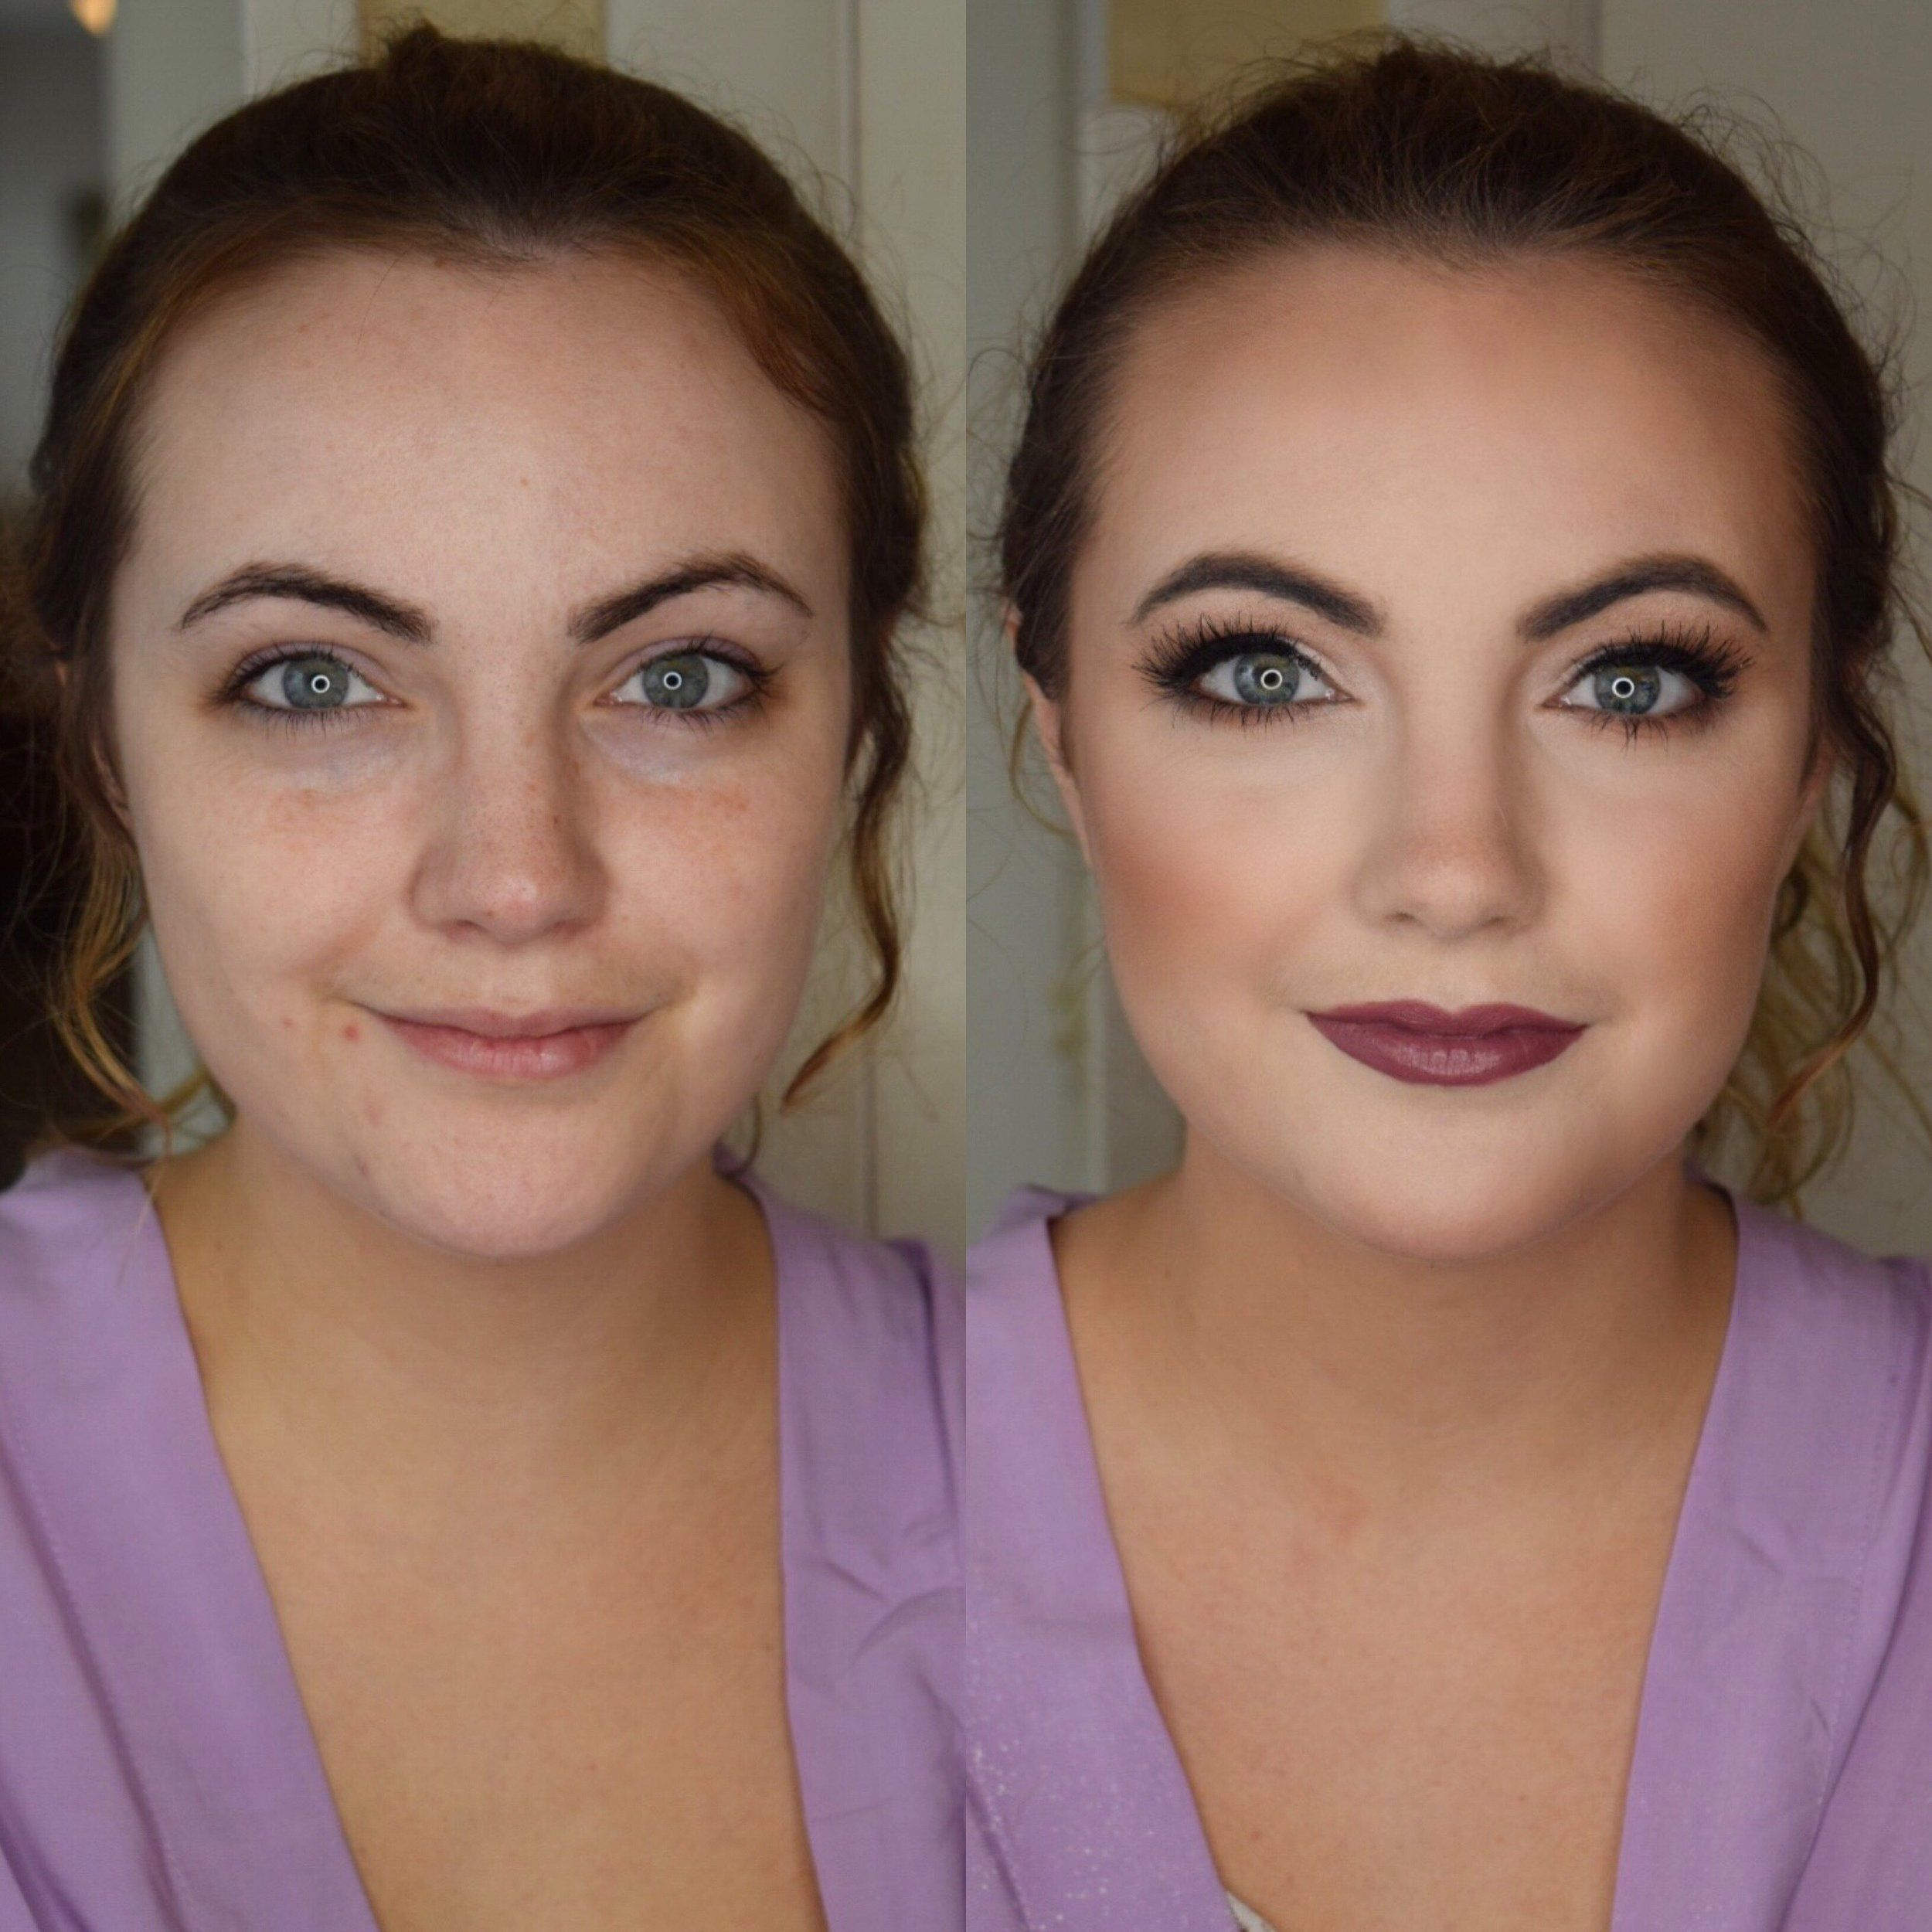 Before And After Pittsburgh Makeup Artist And Hair Stylist Bride Makeup Bridesmaid Makeup Hair Stylist